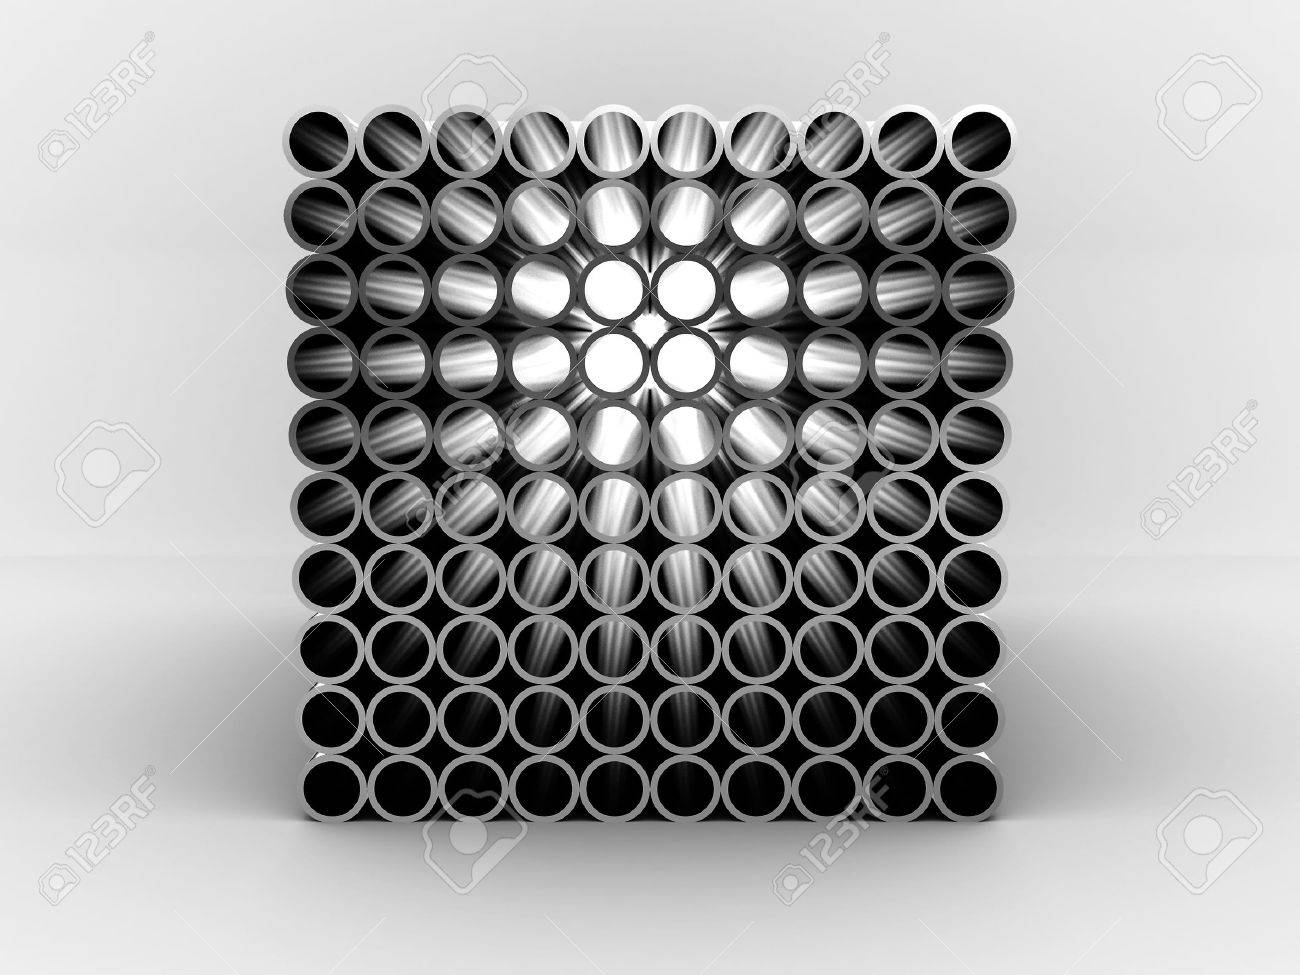 Steel pipes isolated on white background. 3D Stock Photo - 9870312